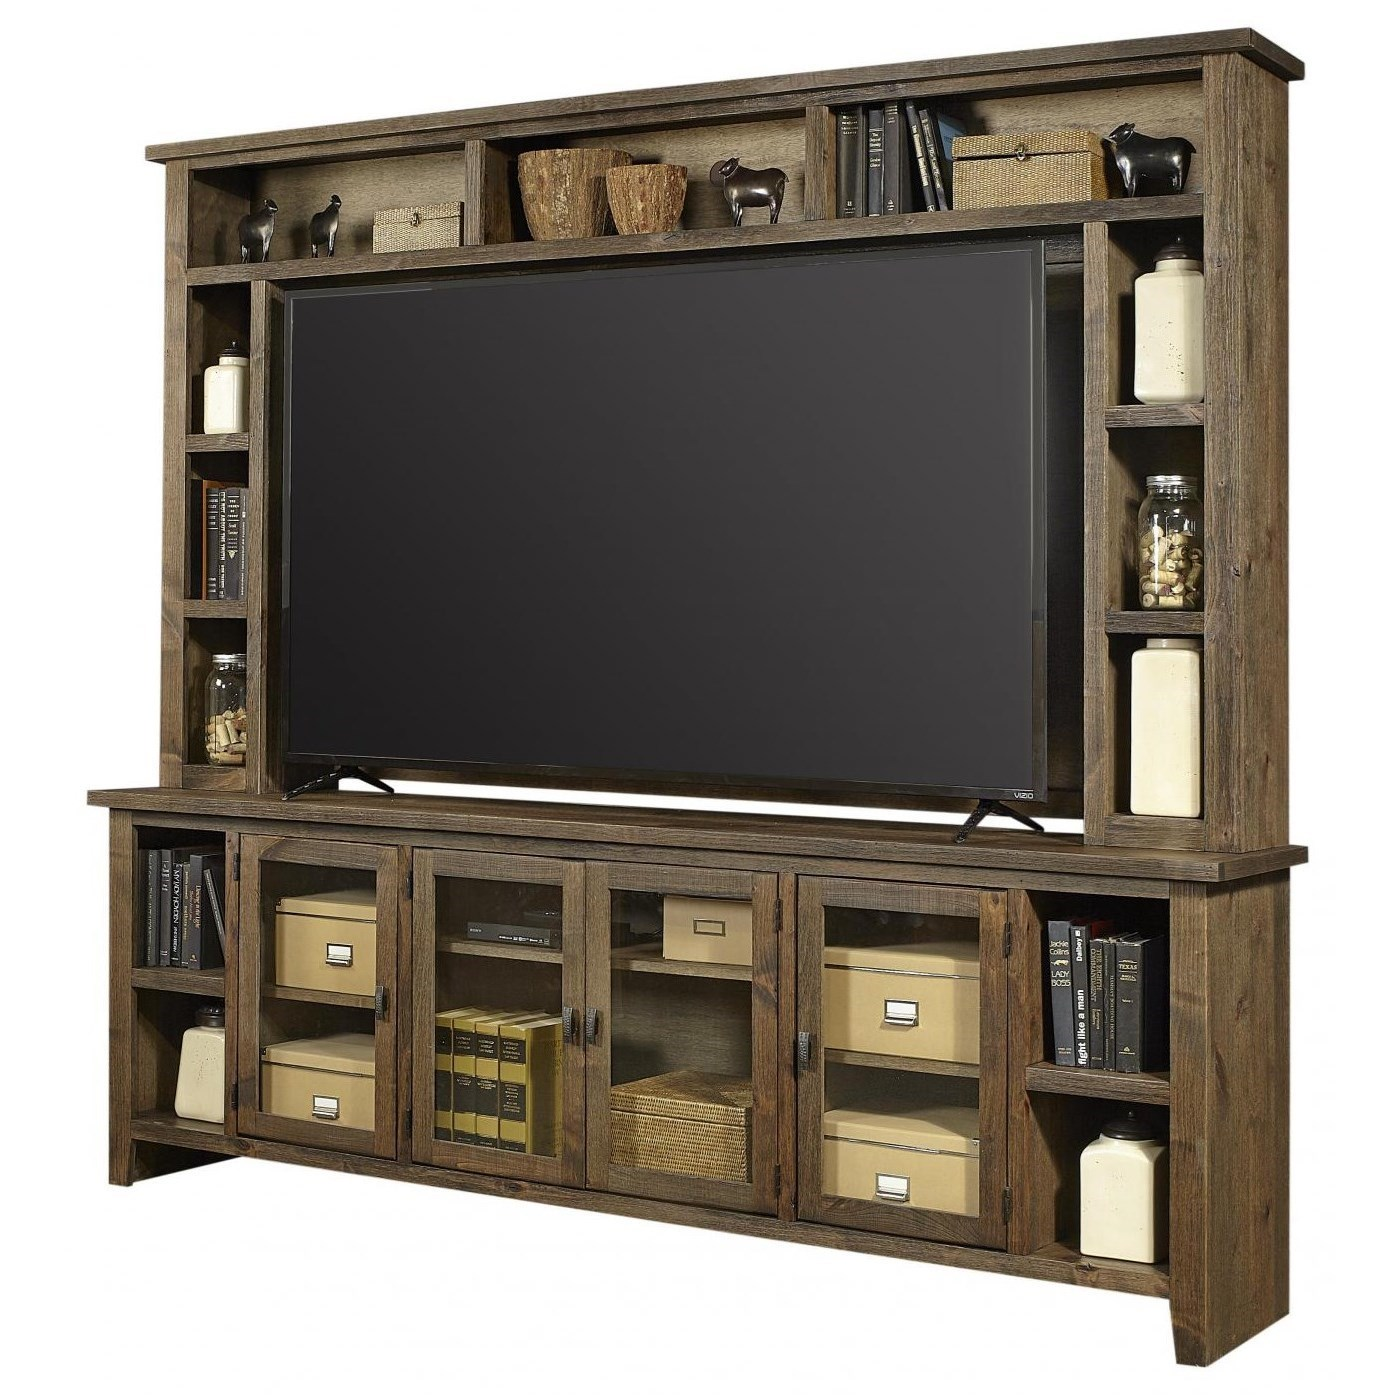 Rustic TV Stand with Hutch